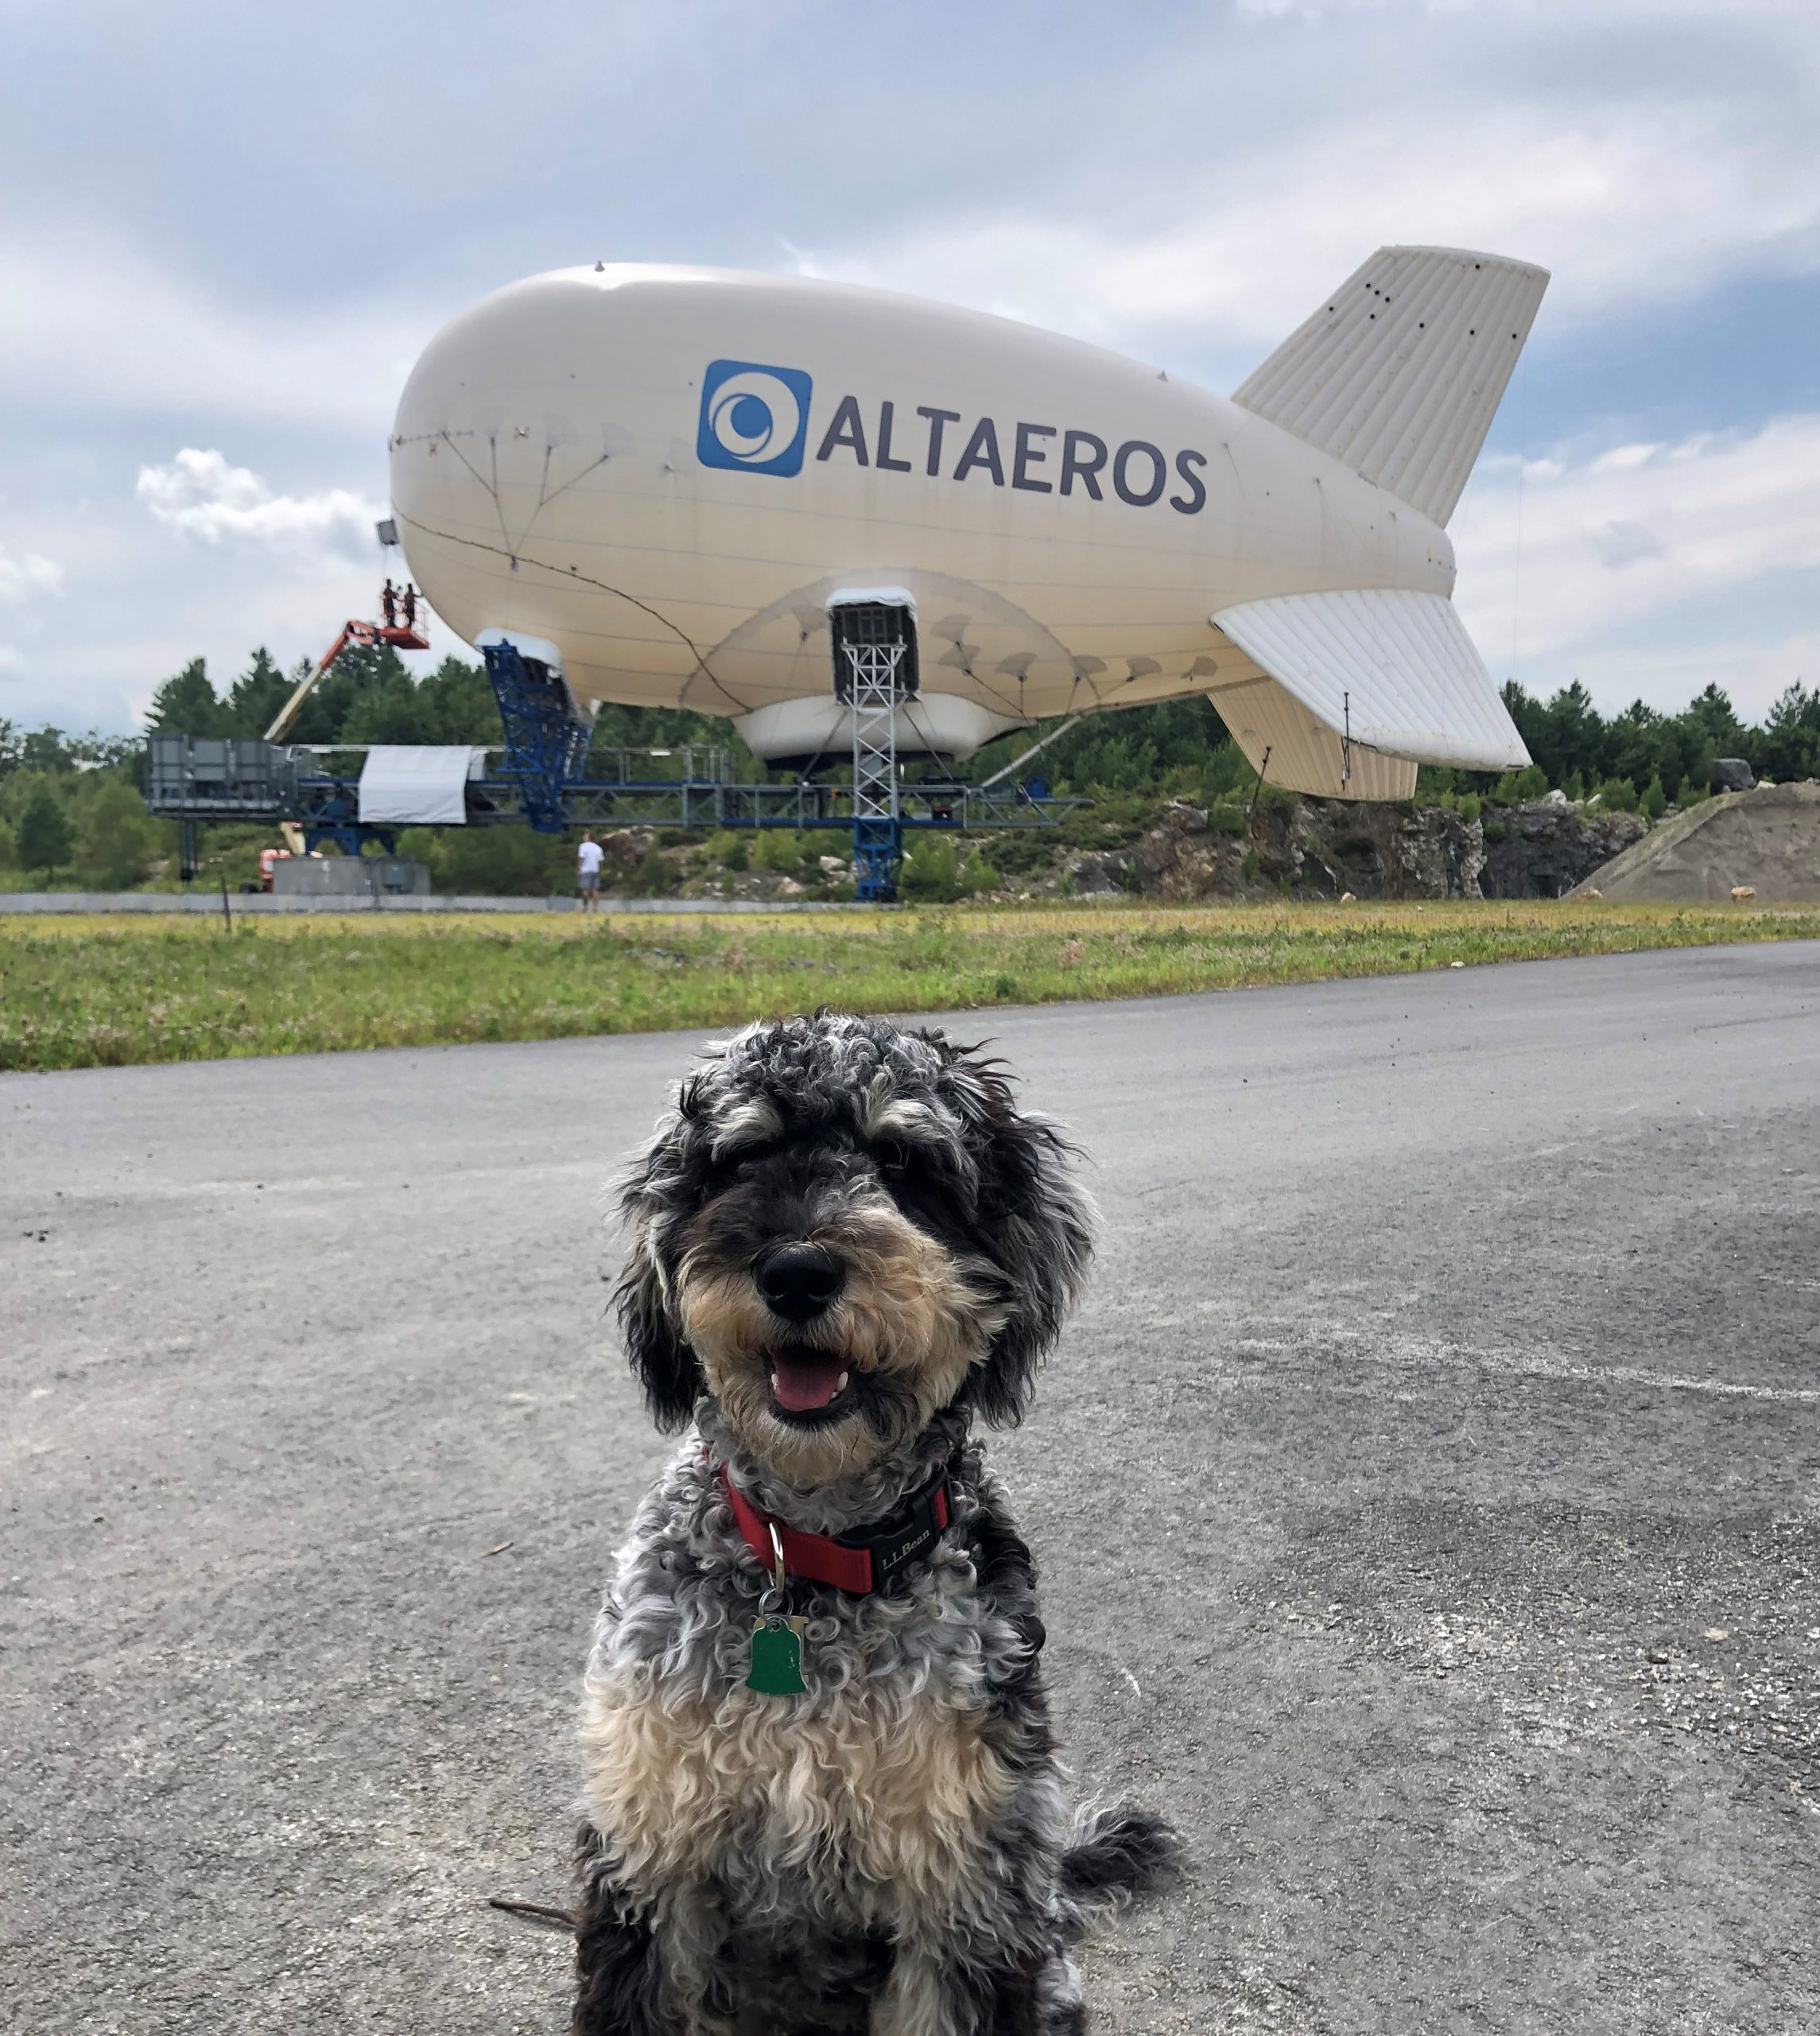 A dog sitting in front of the SuperTower at Altaeros' R&D Center